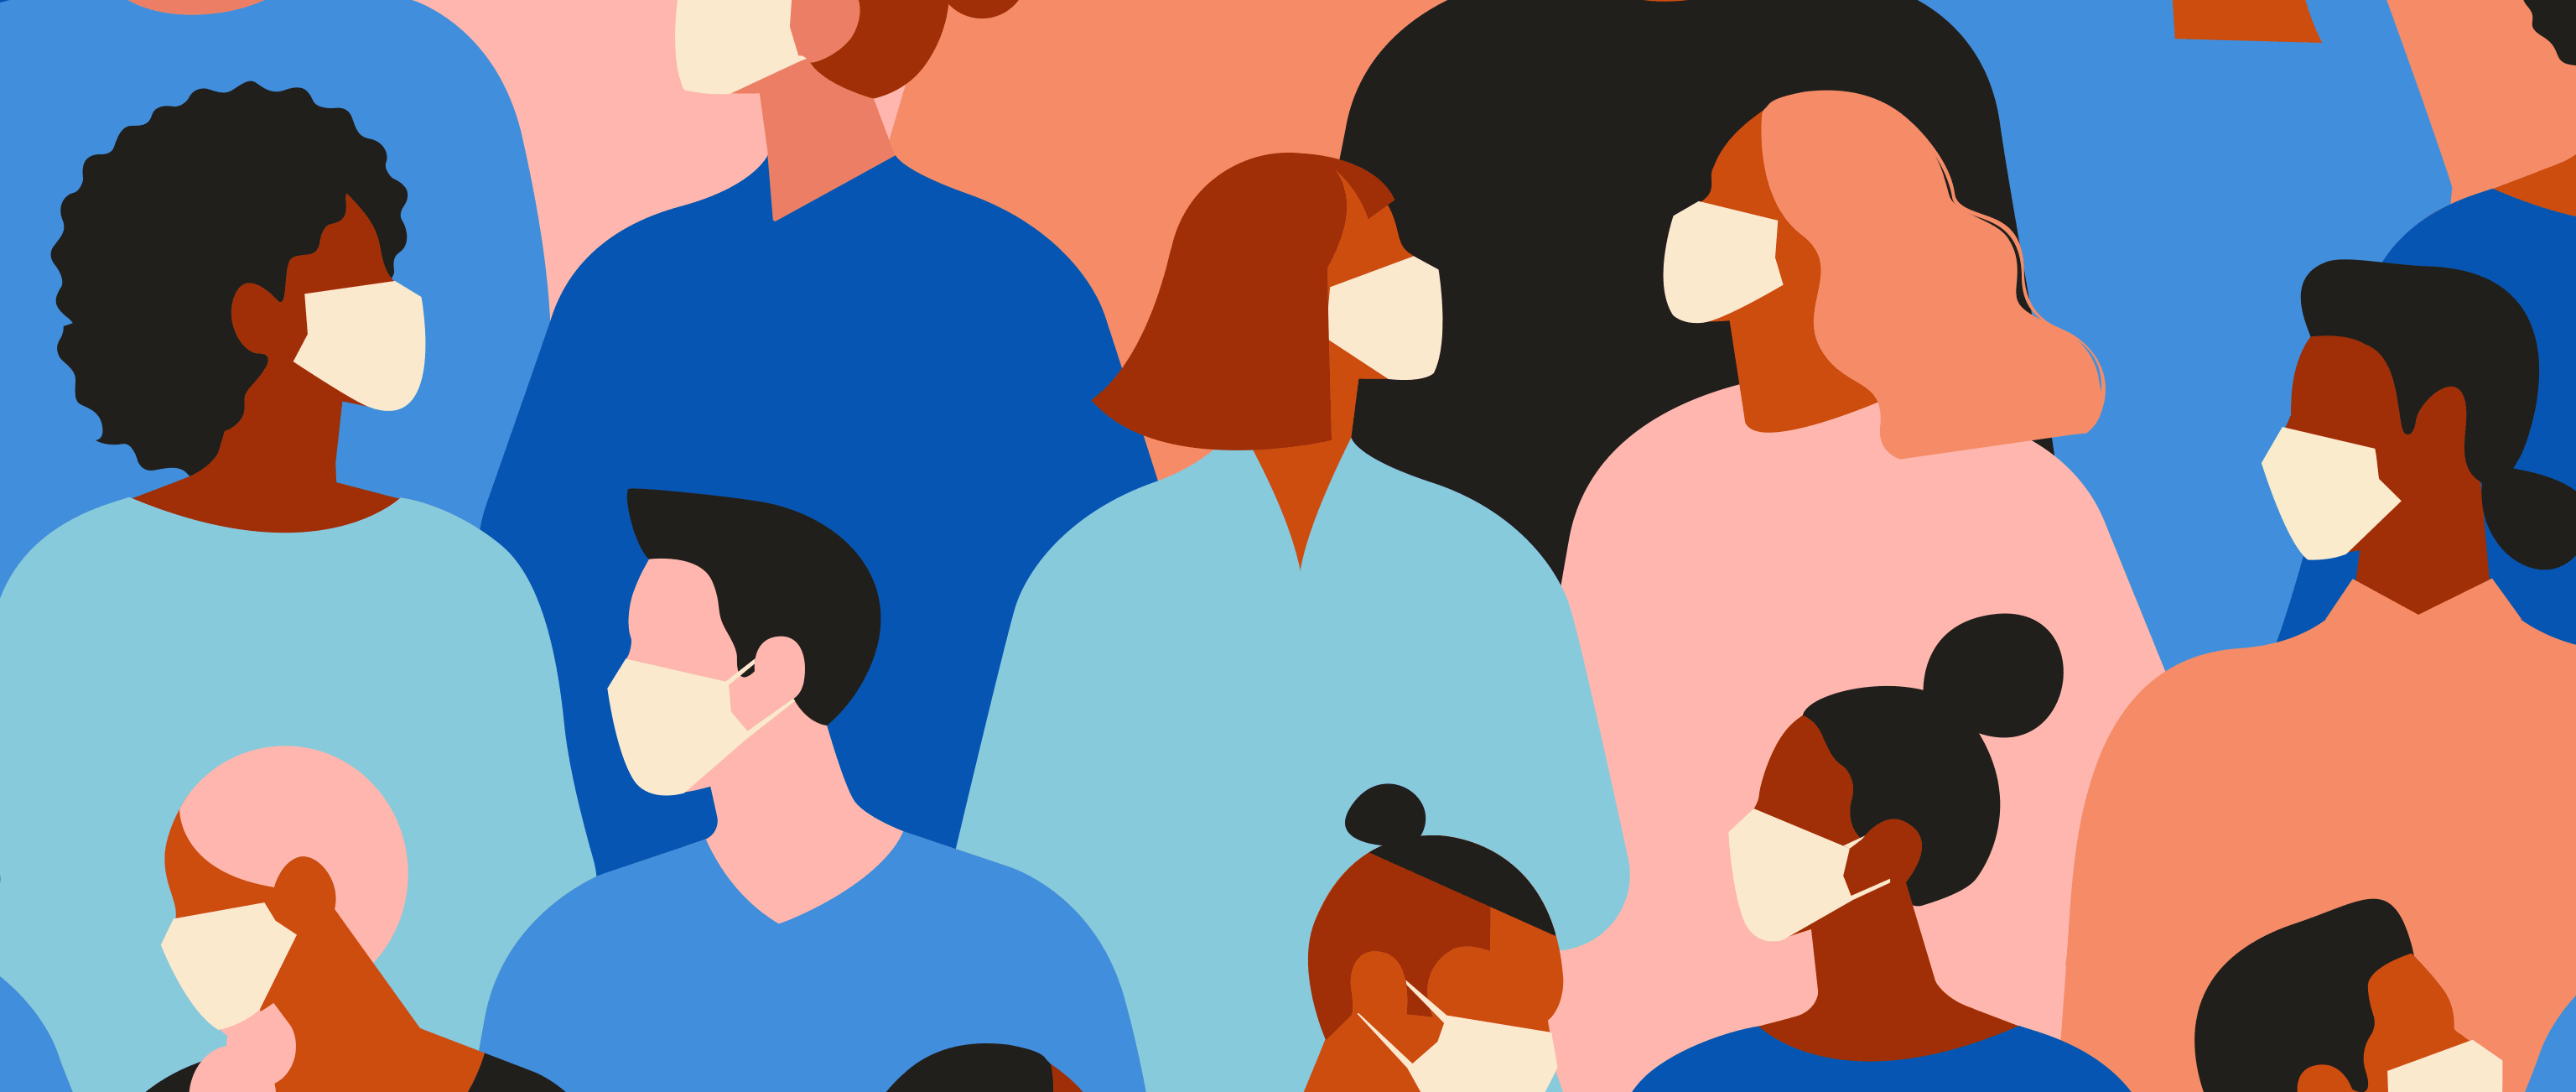 illustration of many human faces, of all hues, wearing face masks